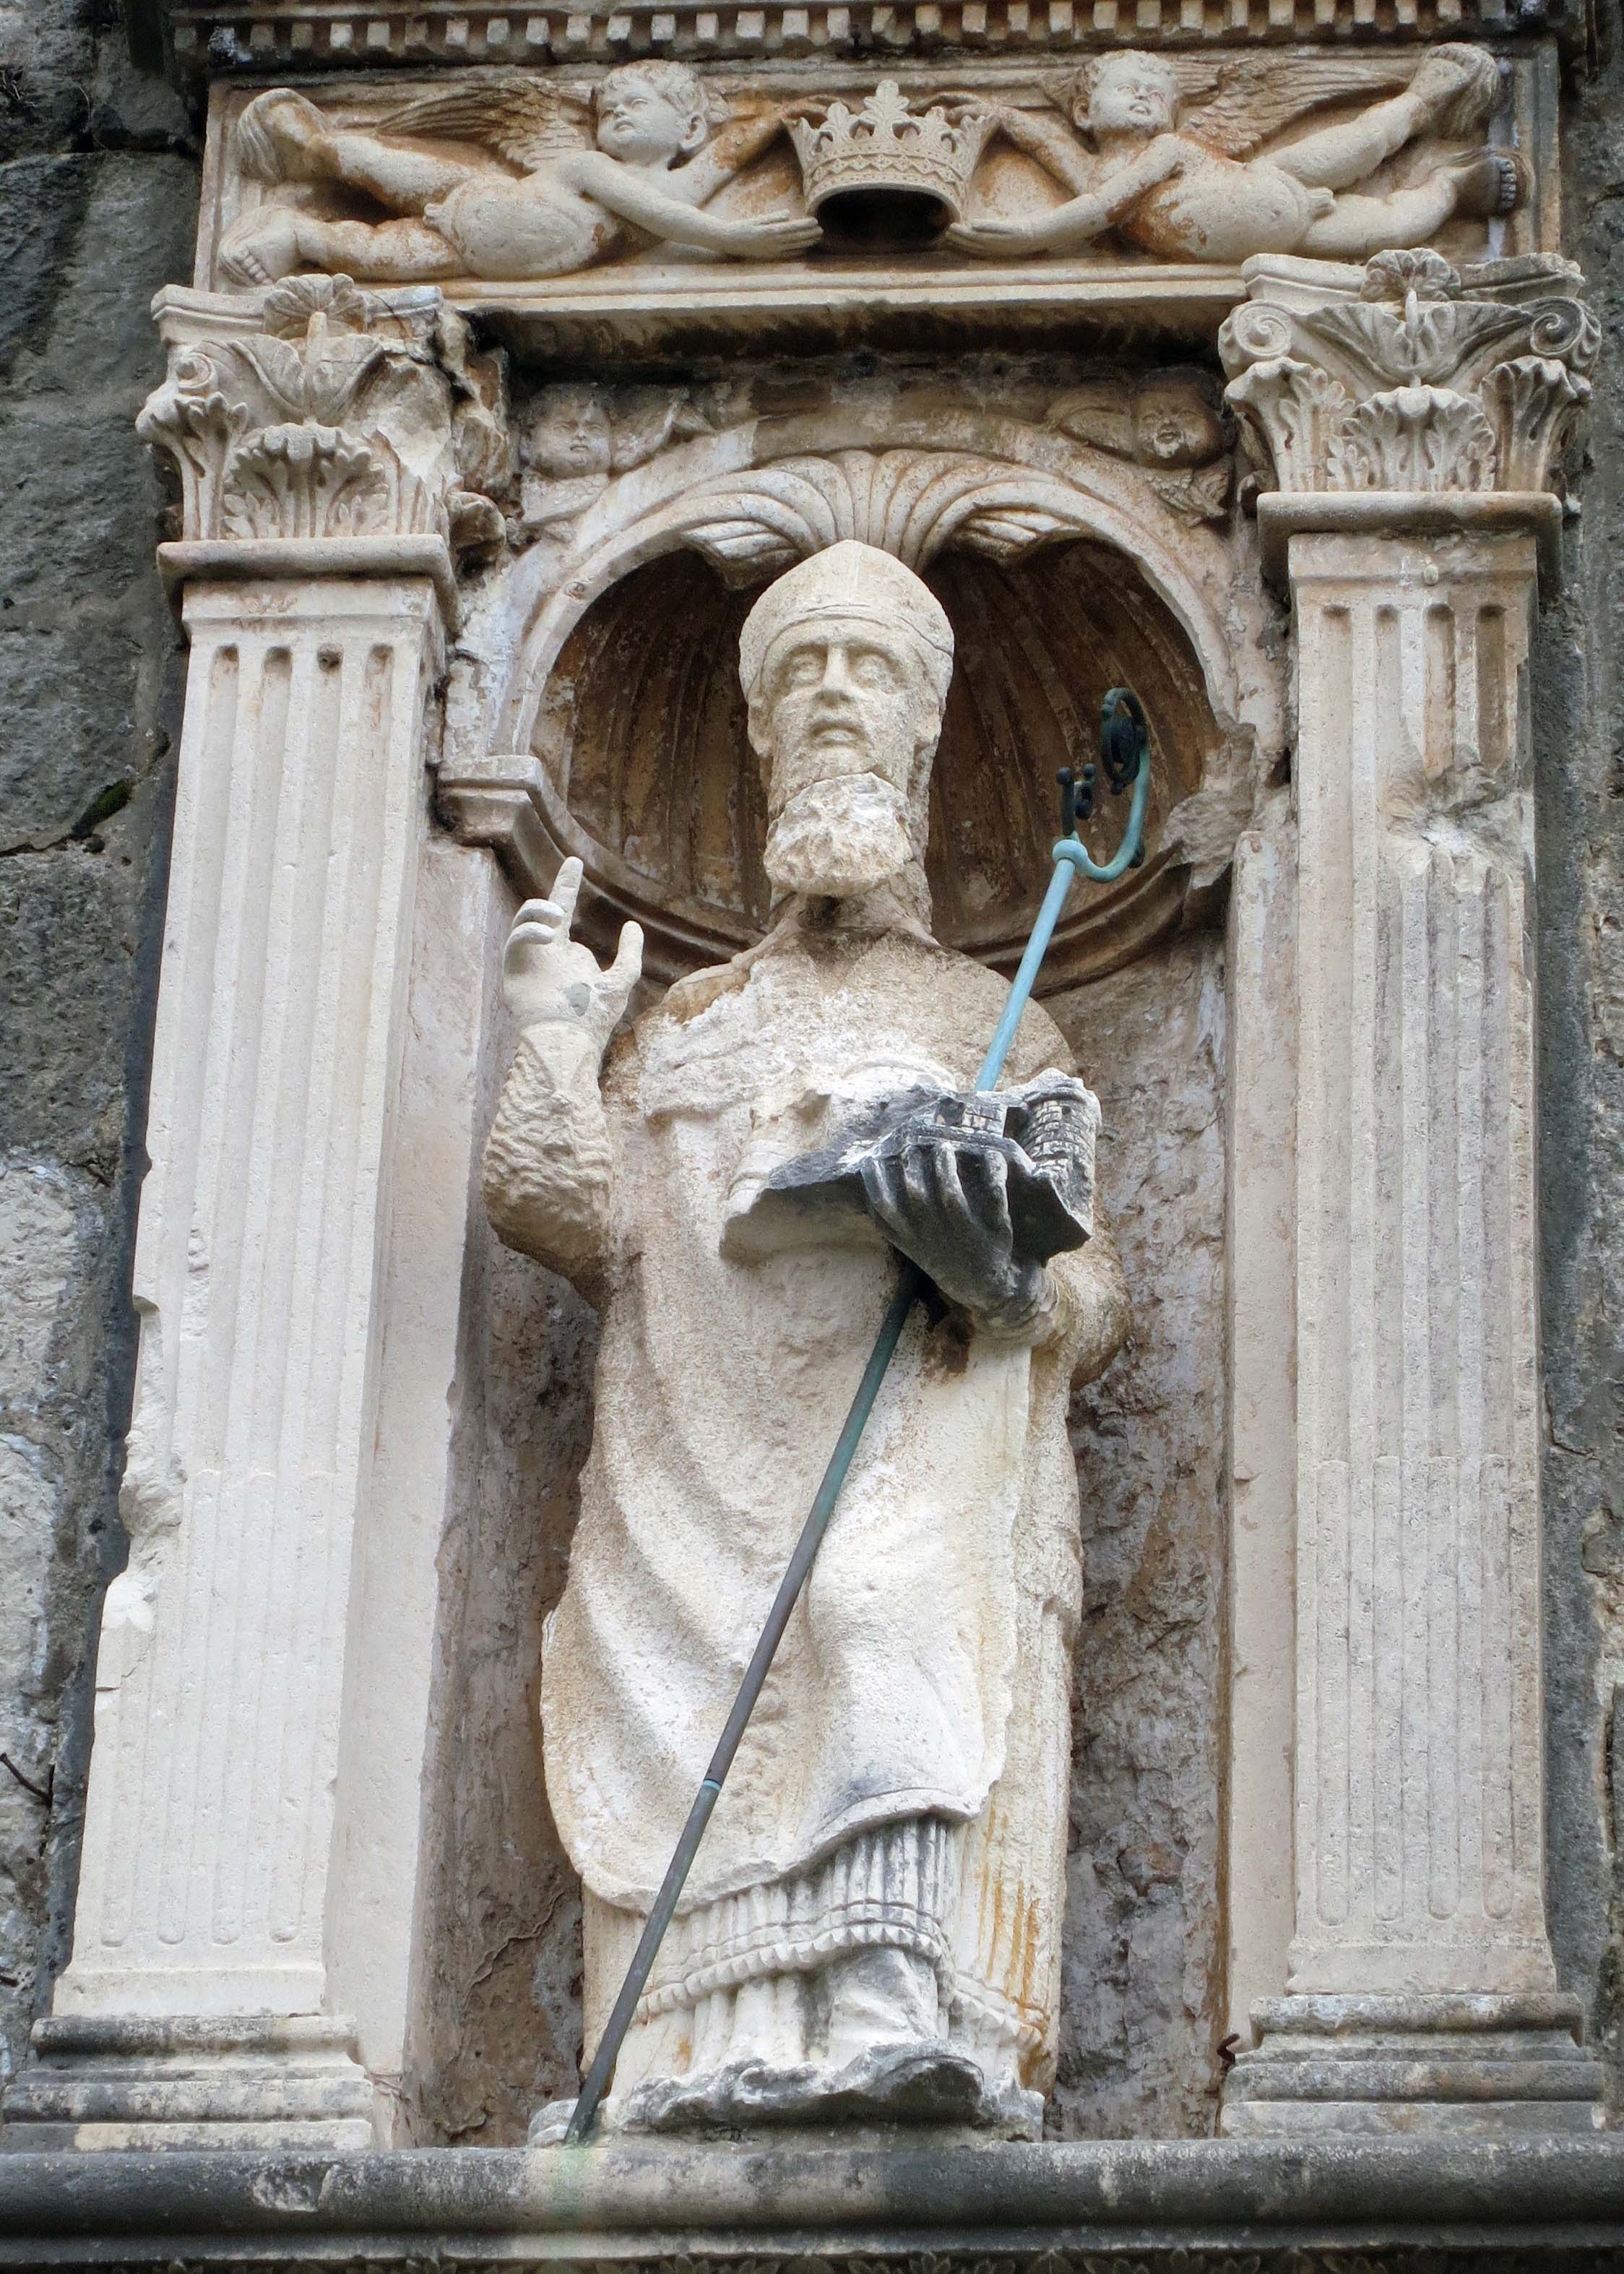 St. Blaise, the Patron Saint of Dubrovnik, holds a model of the city in his hand. This particular statue is found in the Pile Gate at one of the city's main entrances. (Photo by Peggy Mekemson)